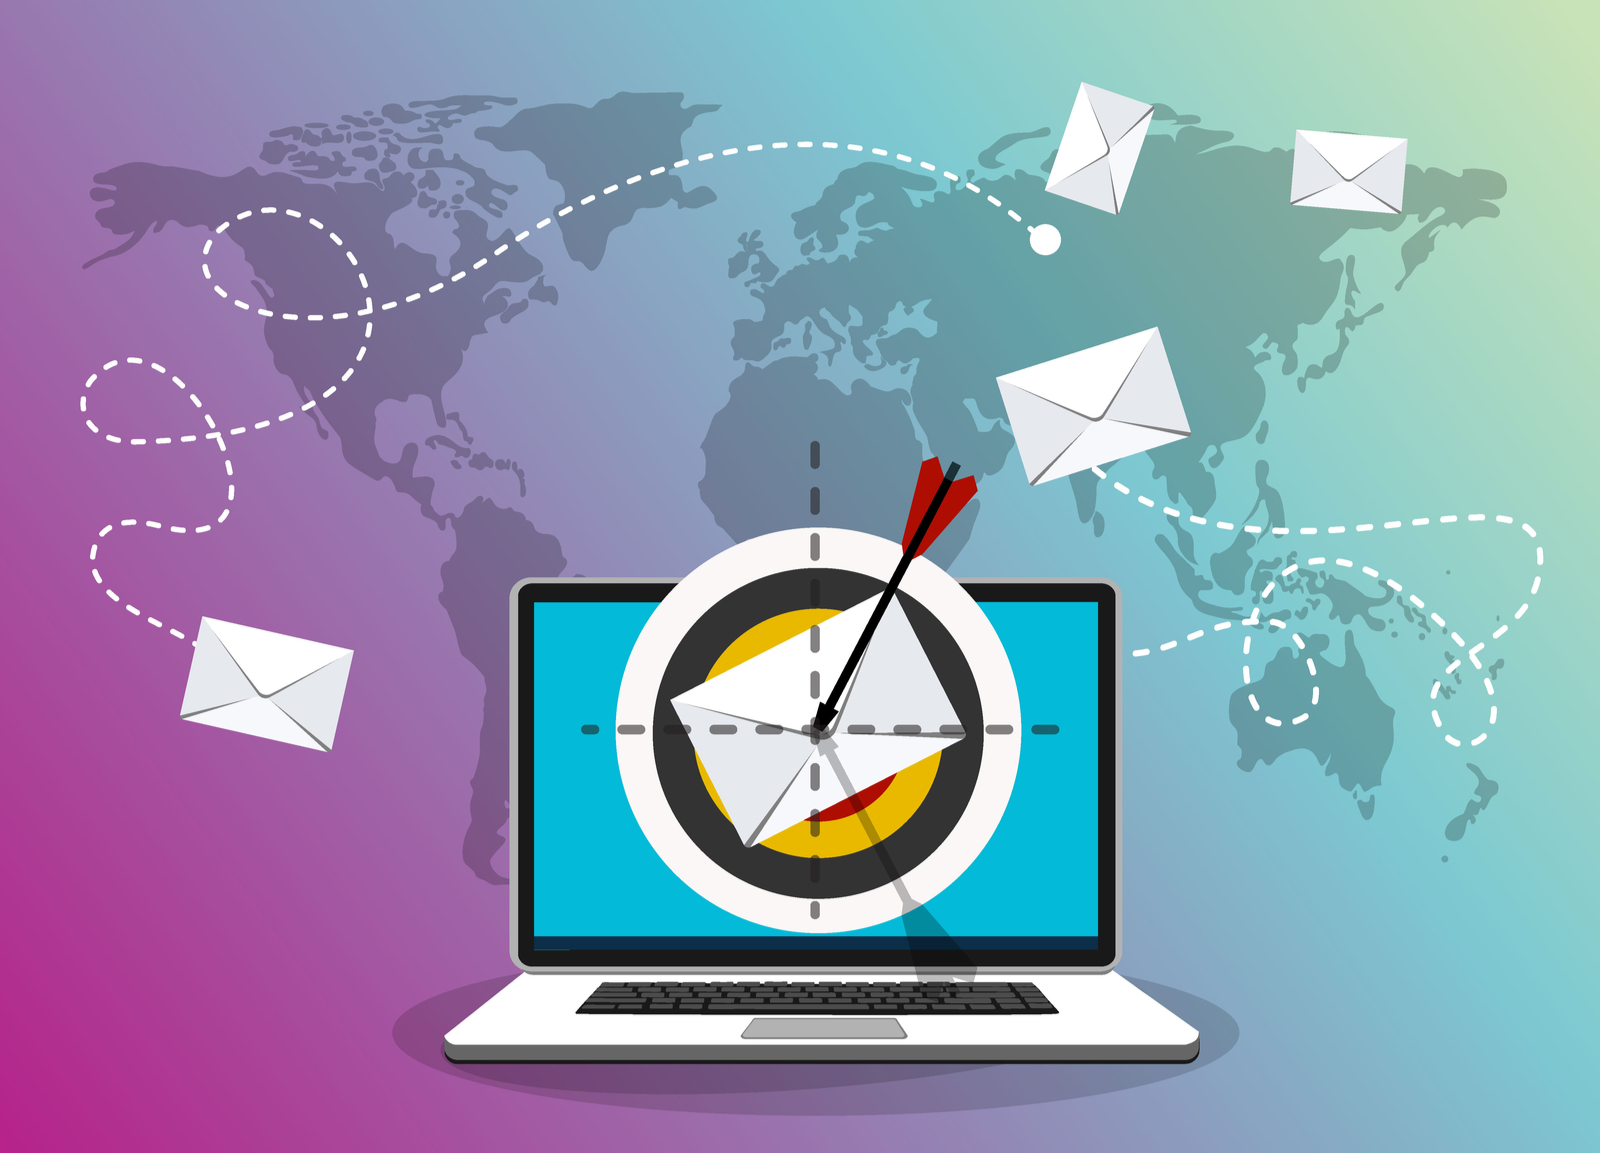 Computer with Envelope and Arrow | How To Pick An Email Marketing Service That's Right For You